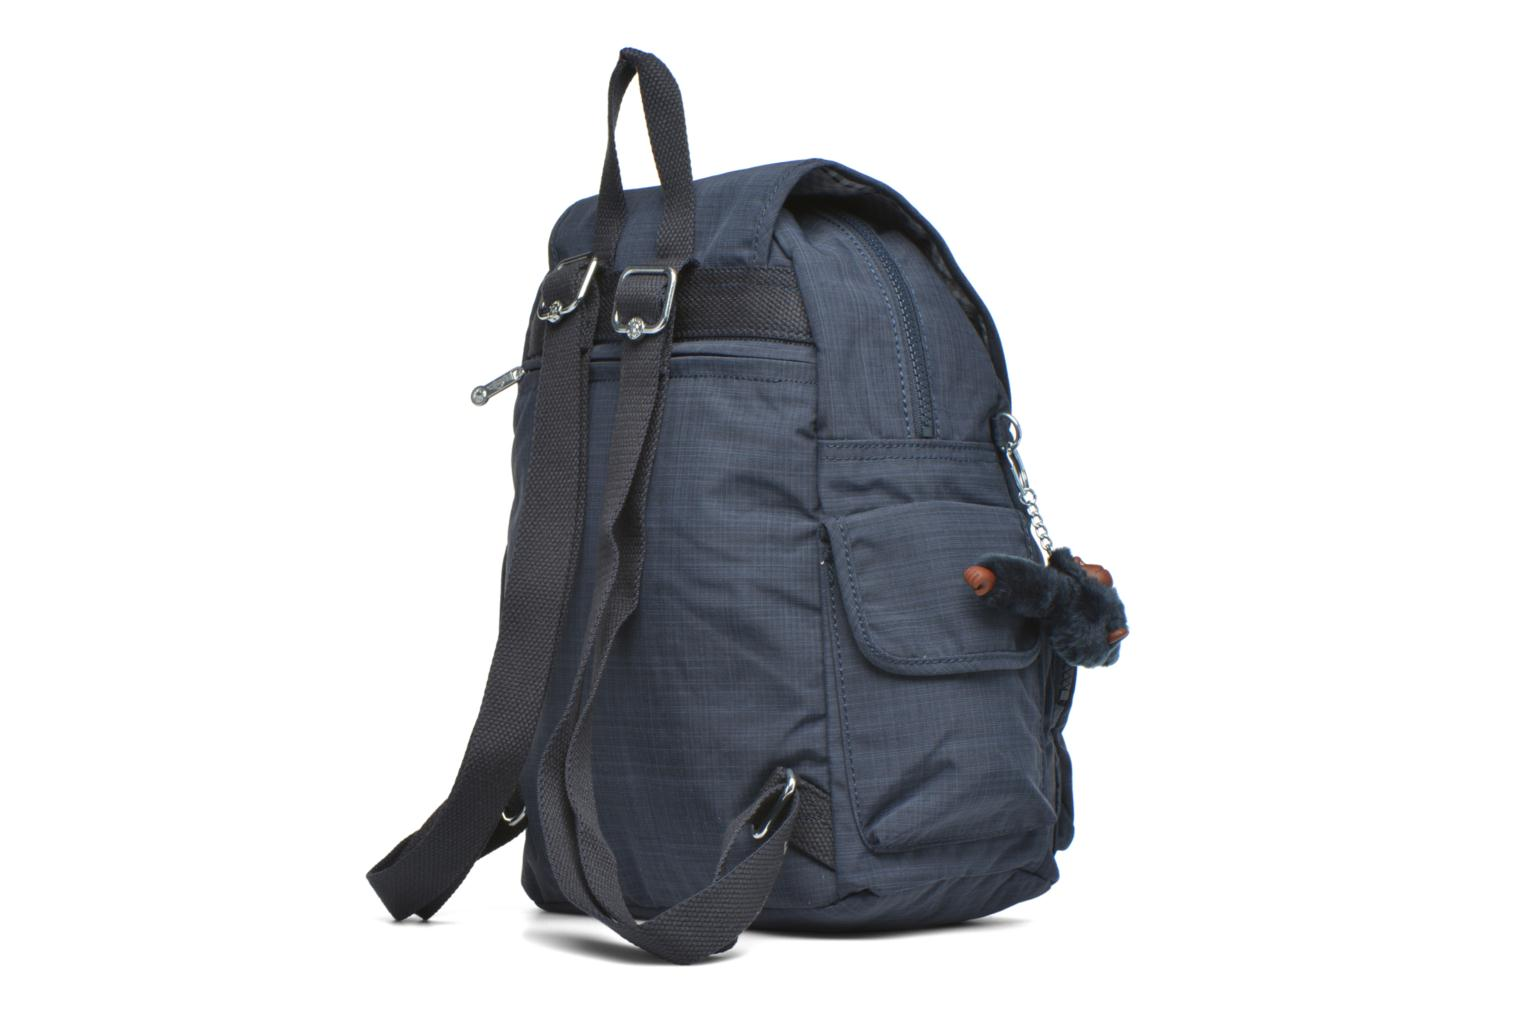 City pack S Dazz true blue